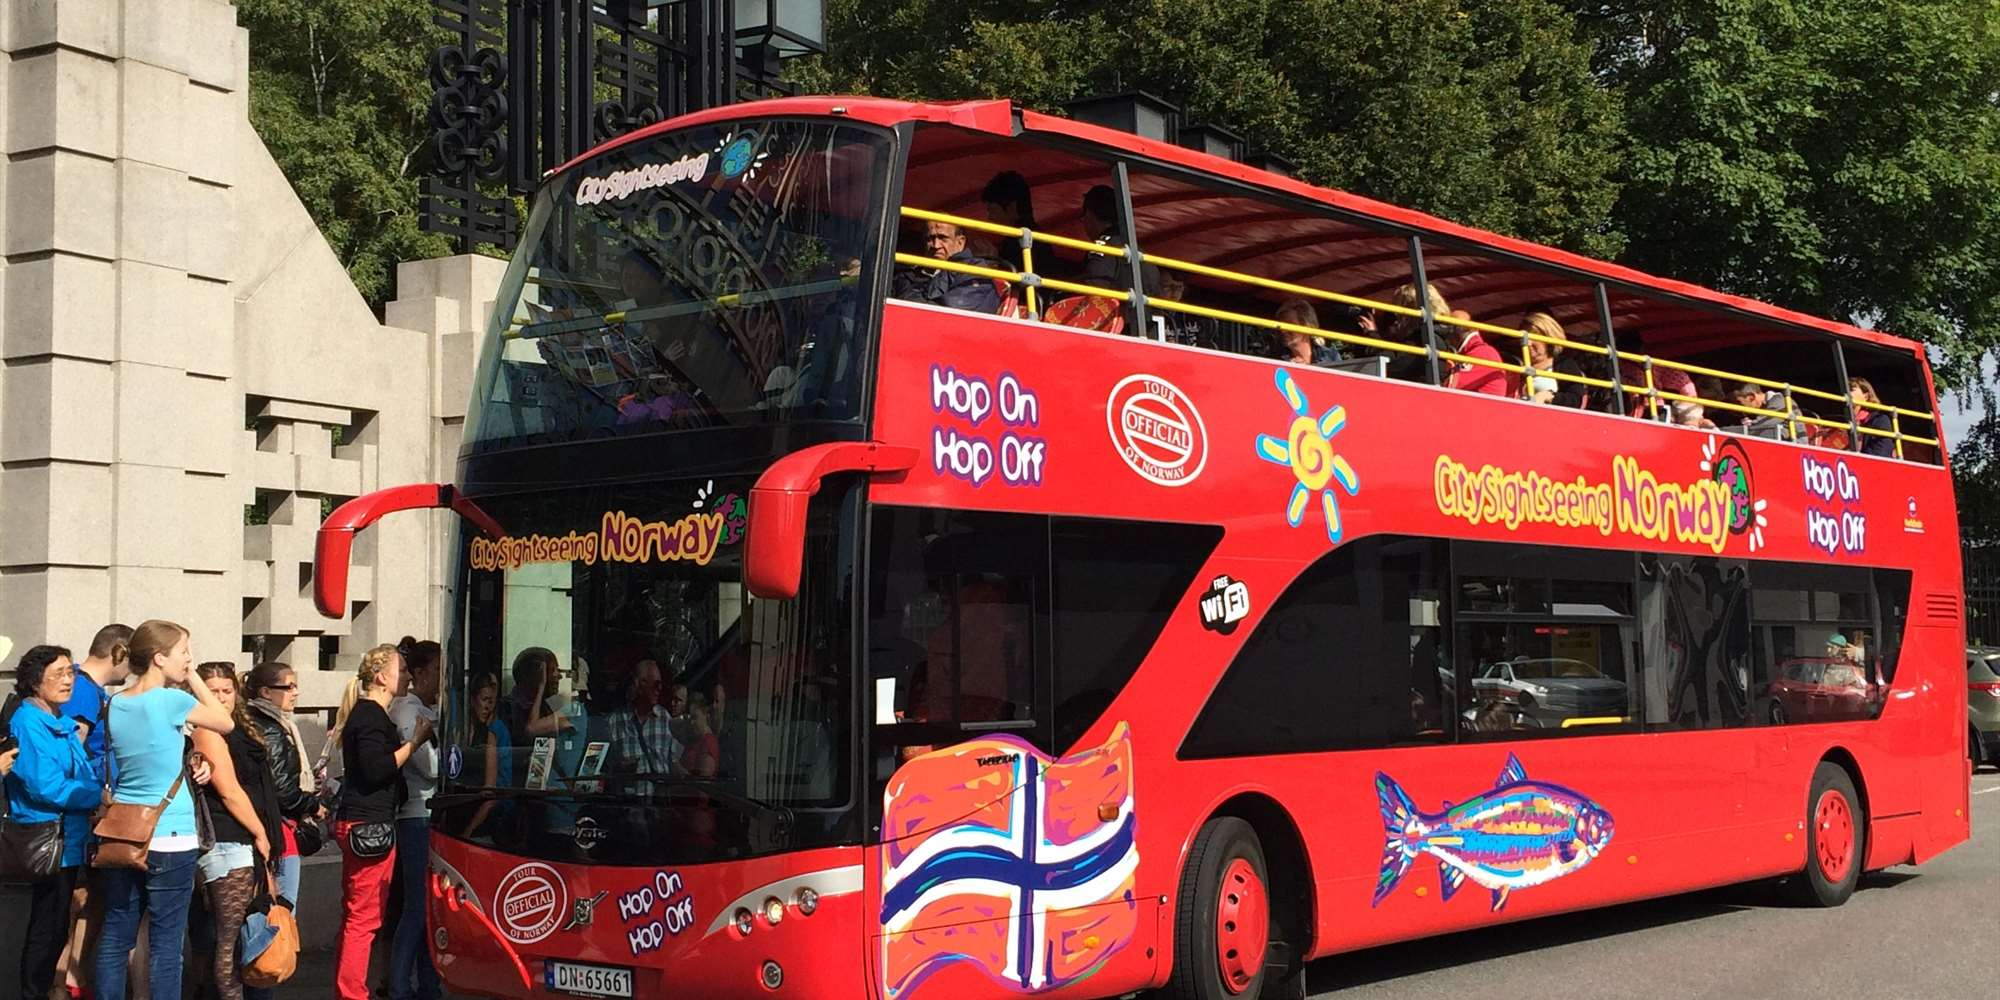 City Sightseeing Hop On - Hop Off